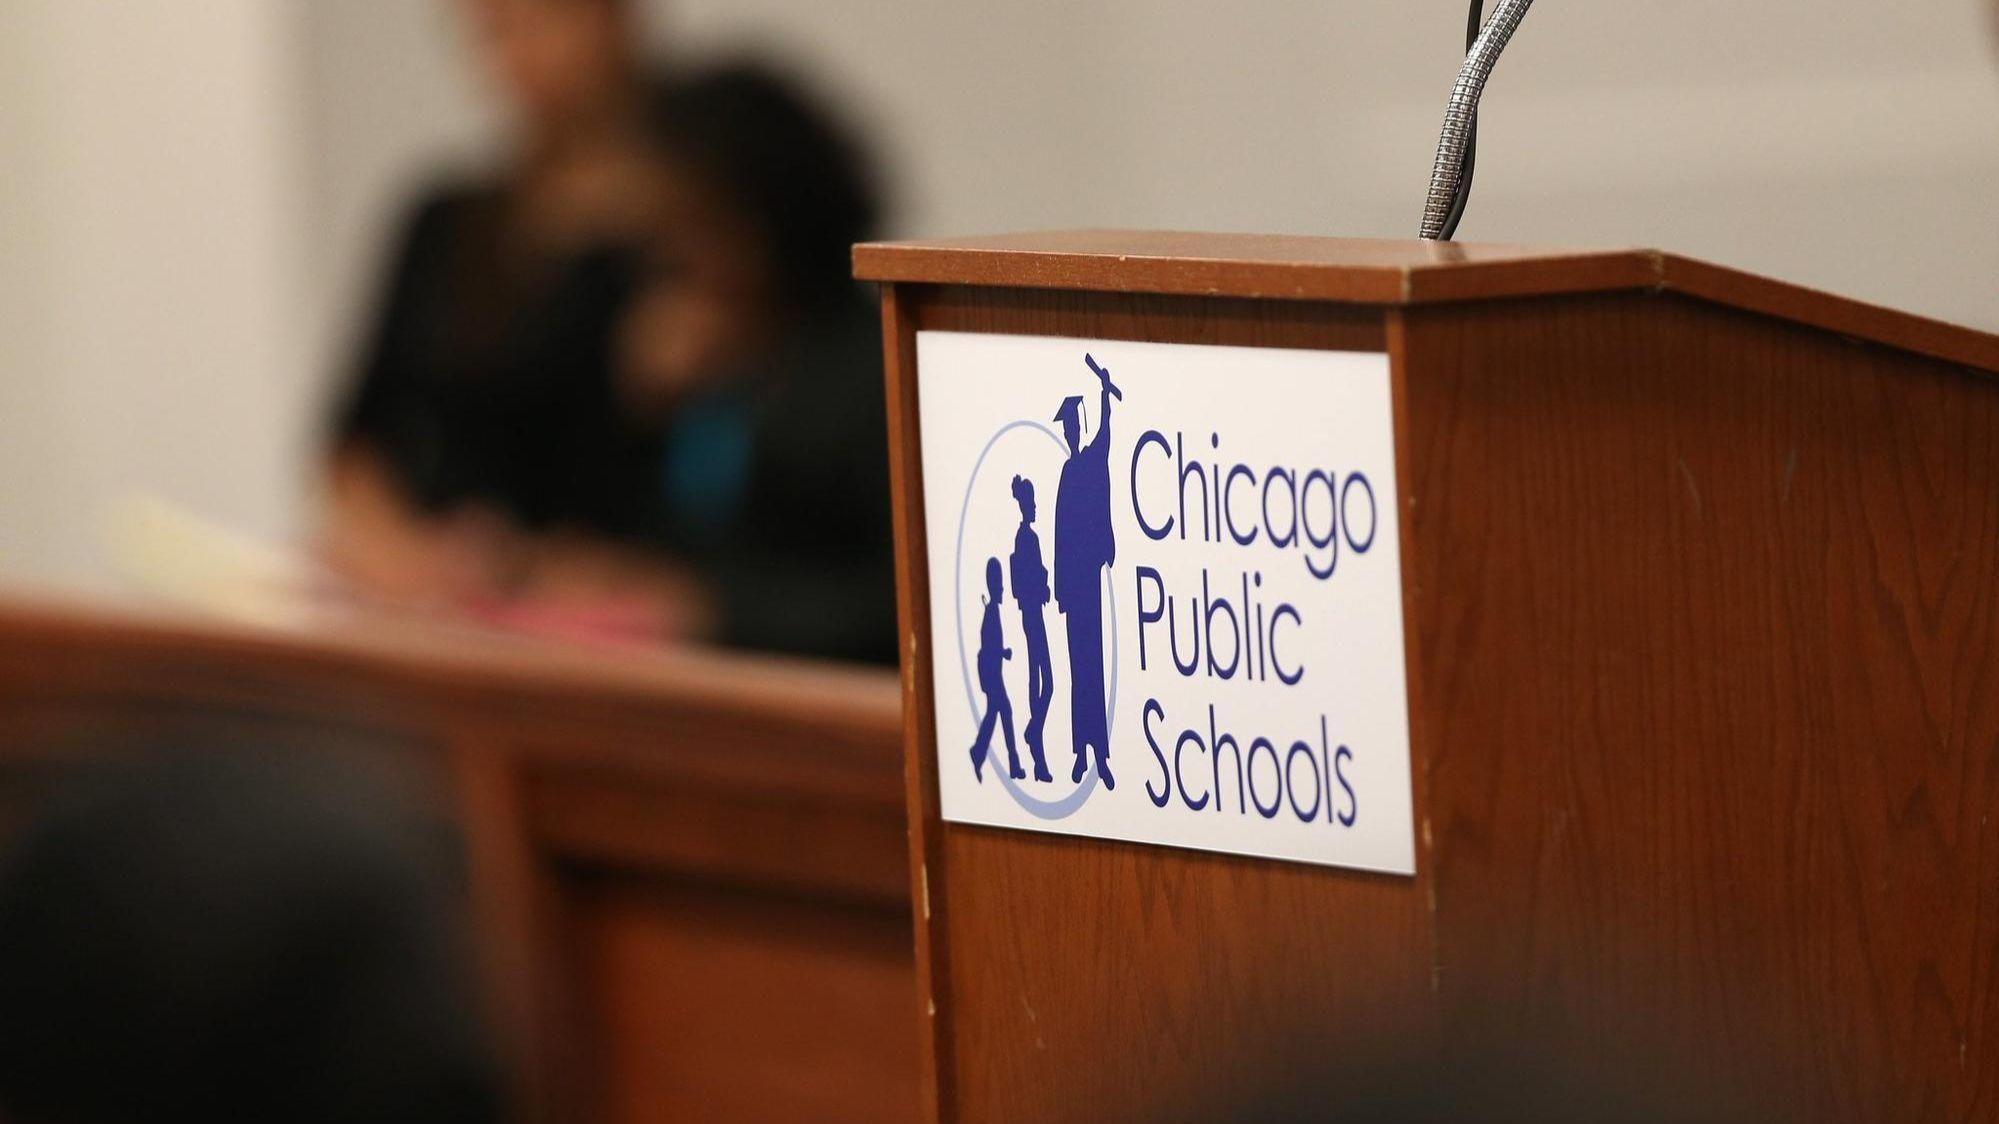 The mayor's appointed school board has failed Chicago